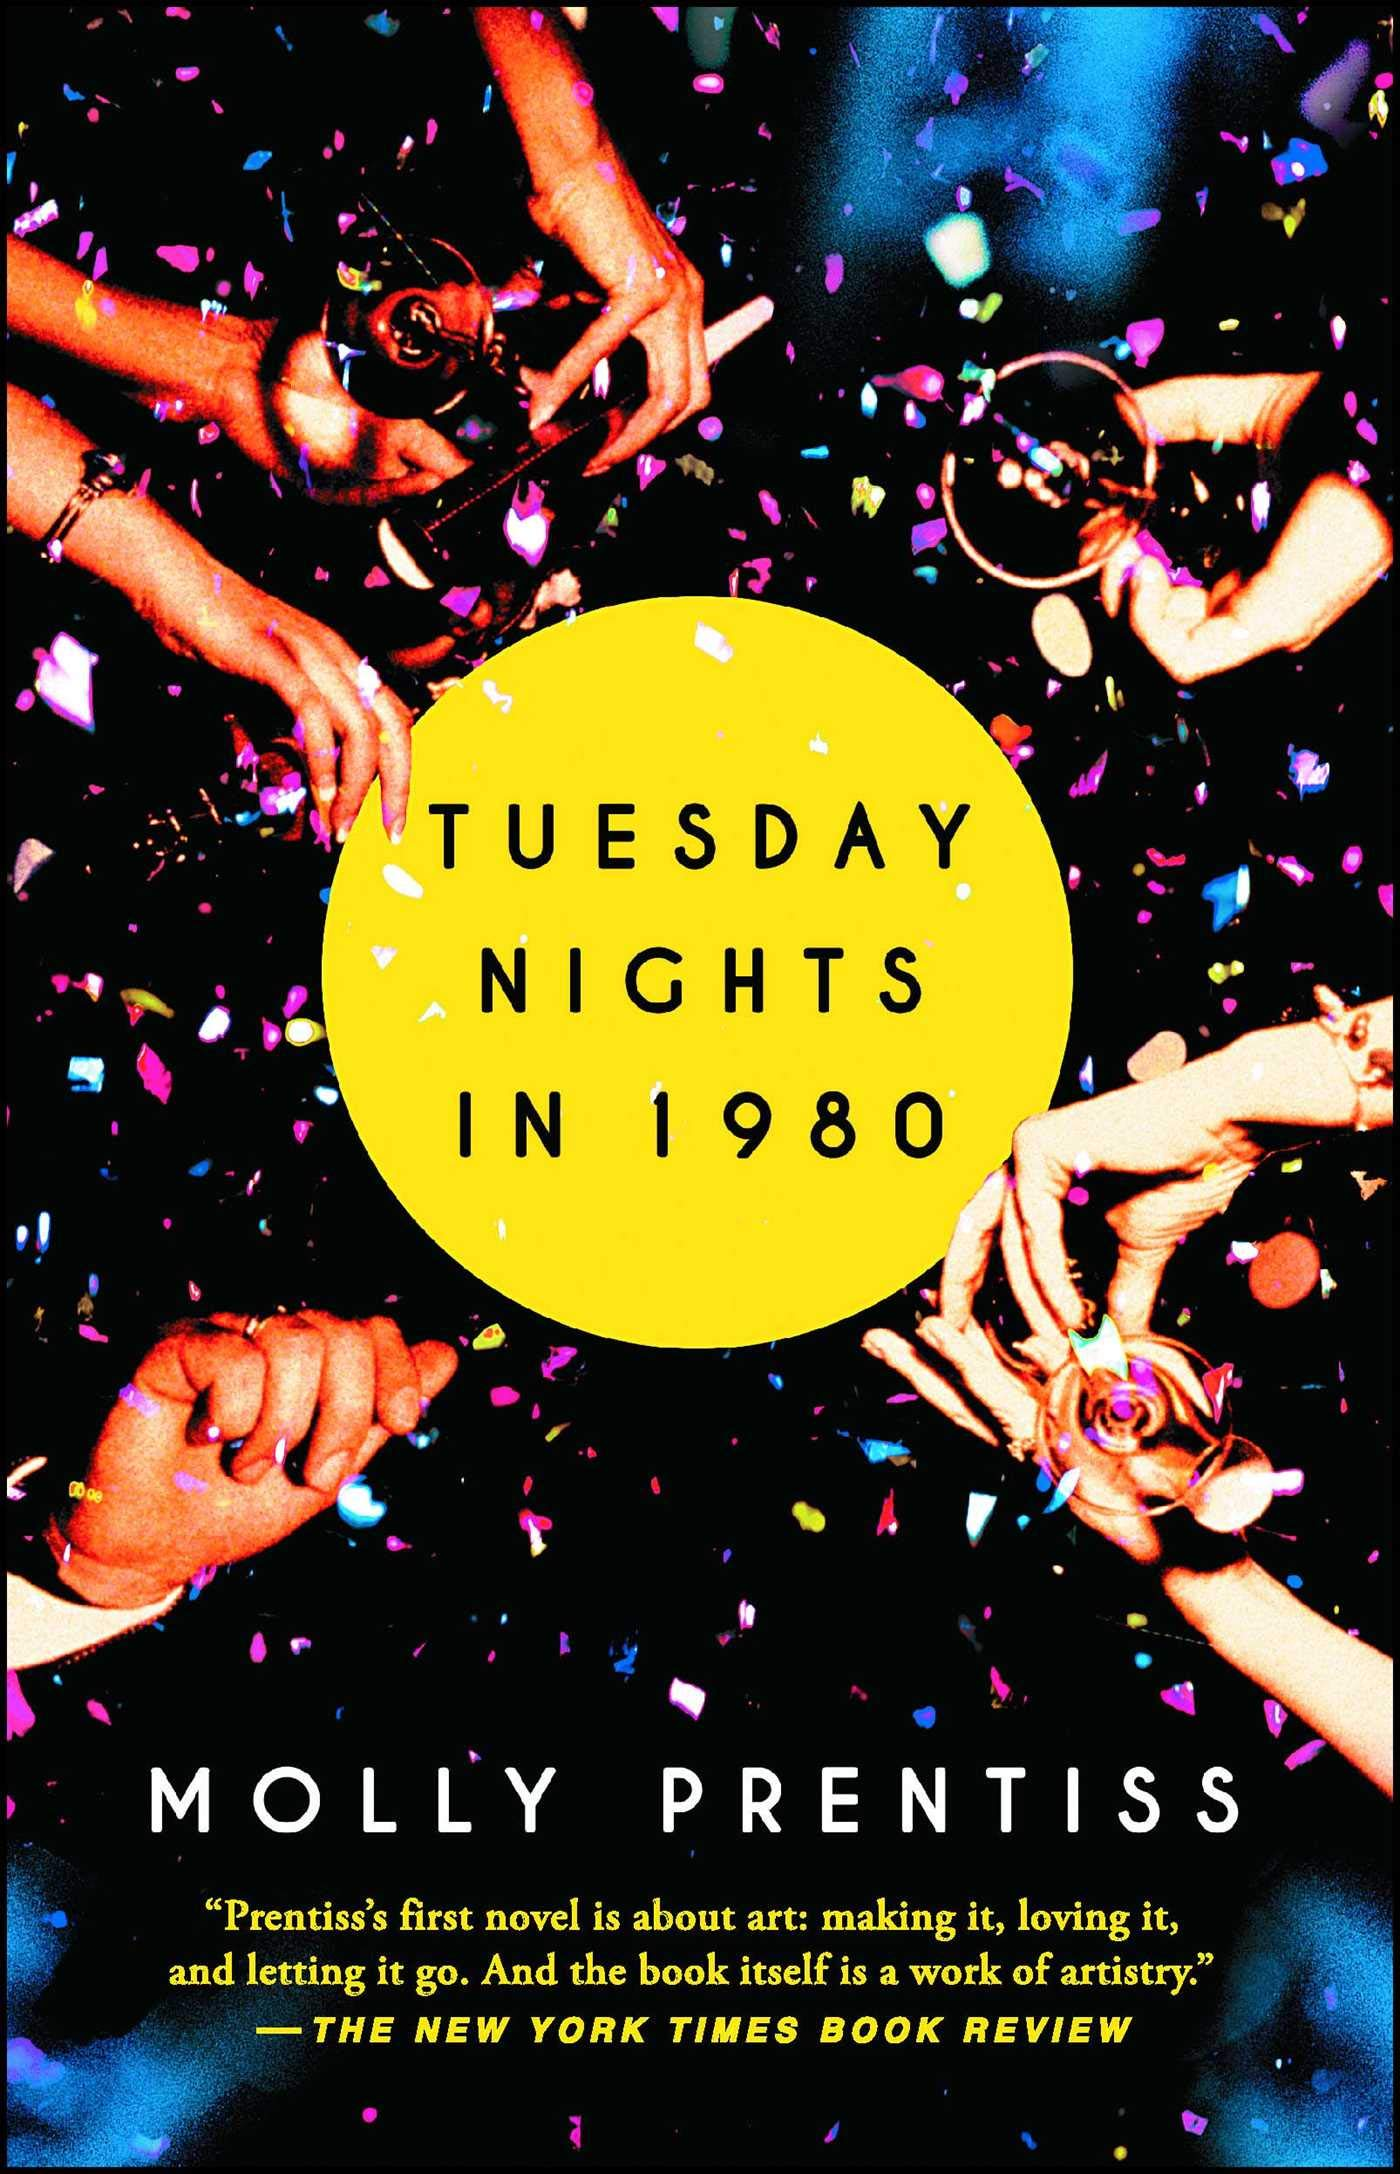 Tuesday Nights in 1980by Molly Prentiss - As far as I'm concerned, this is one of the most underrated books out there. It's easily my favorite read of the last few years. The love story doesn't necessarily have a happy, shiny ending, but I really enjoyed the gritty New York City romance. Whether you read this for the love or something else… JUST READ IT!